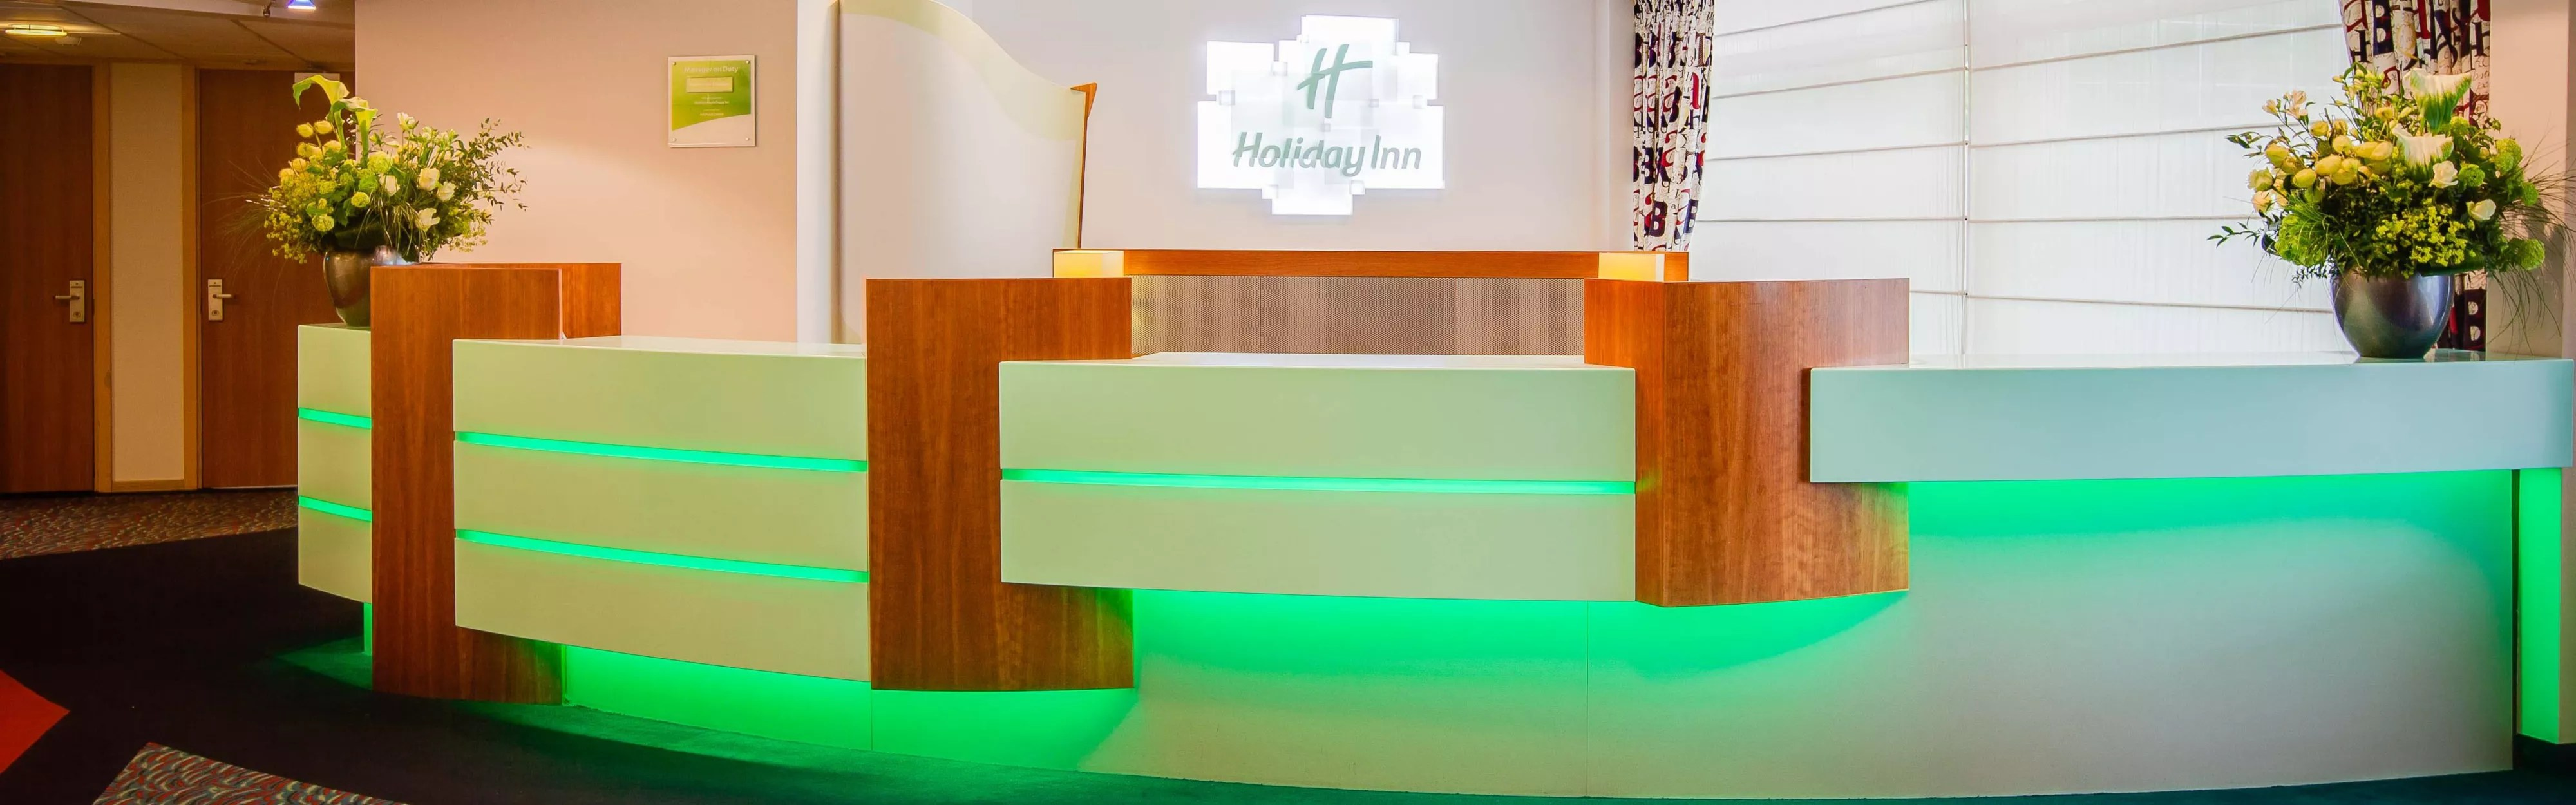 Discount Mobili Napoli Leiden City Centre Hotels Holiday Inn Hotel Leiden